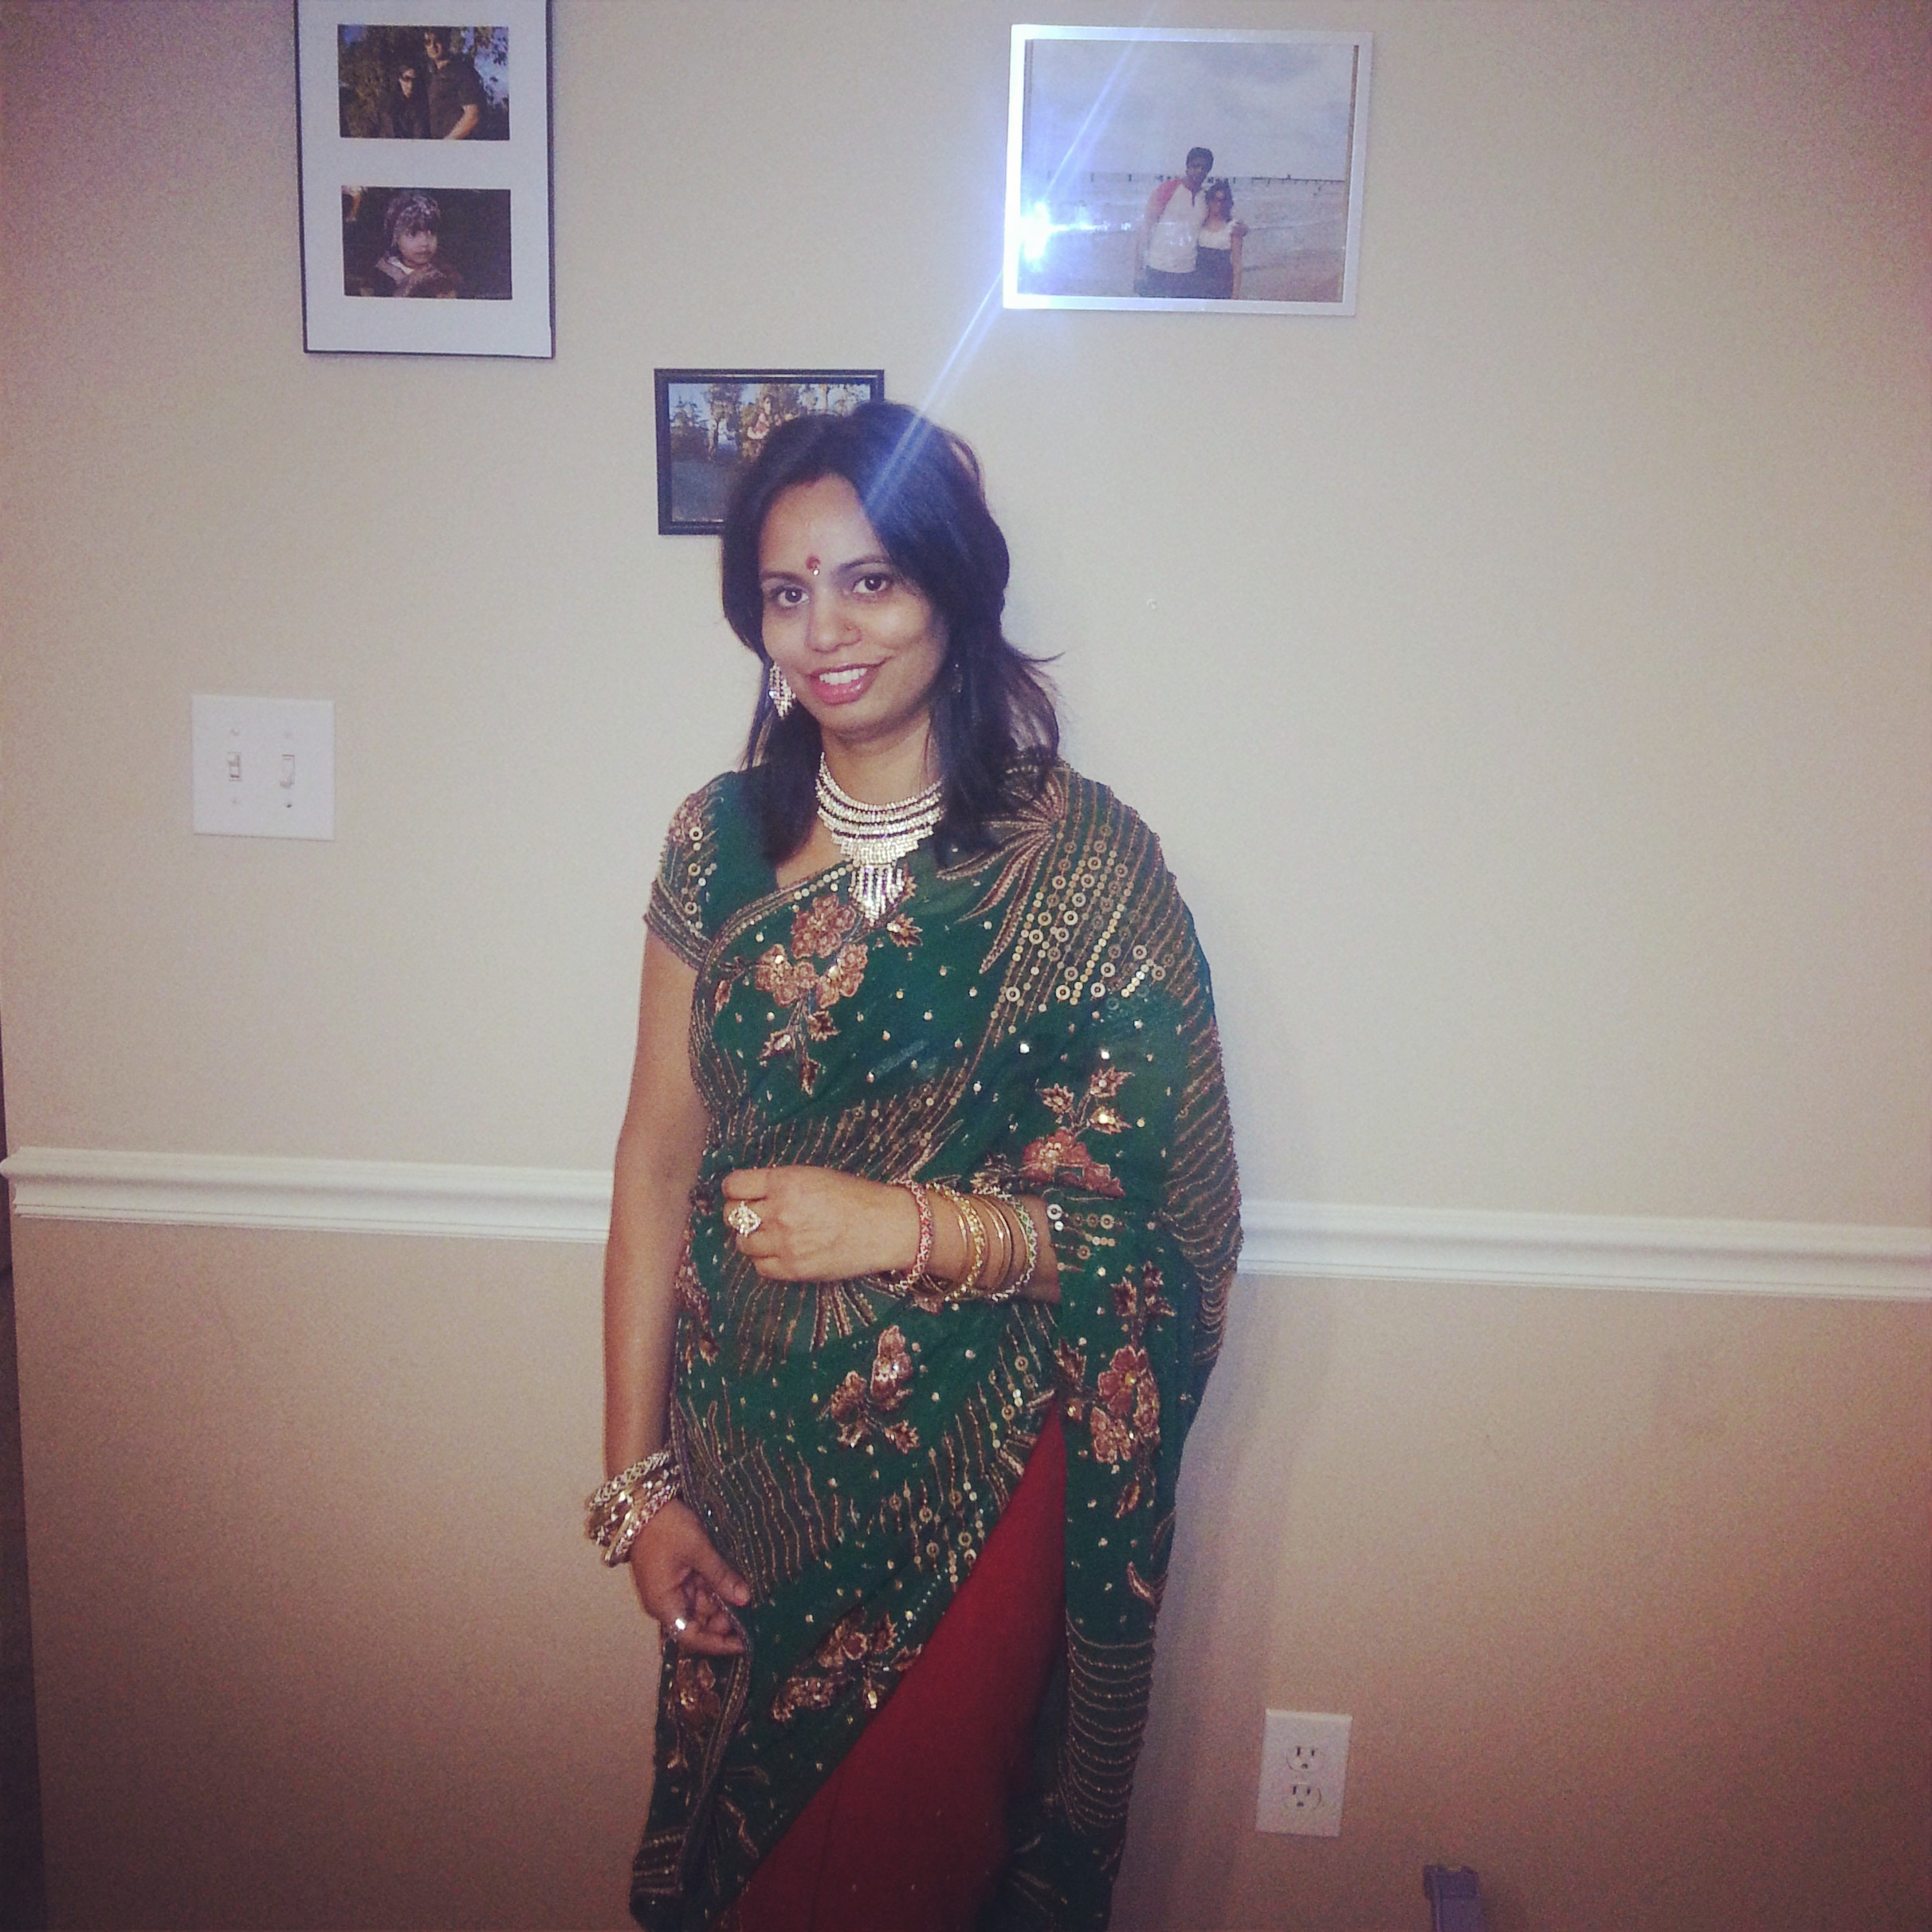 All dressed up for Karwa Chauth